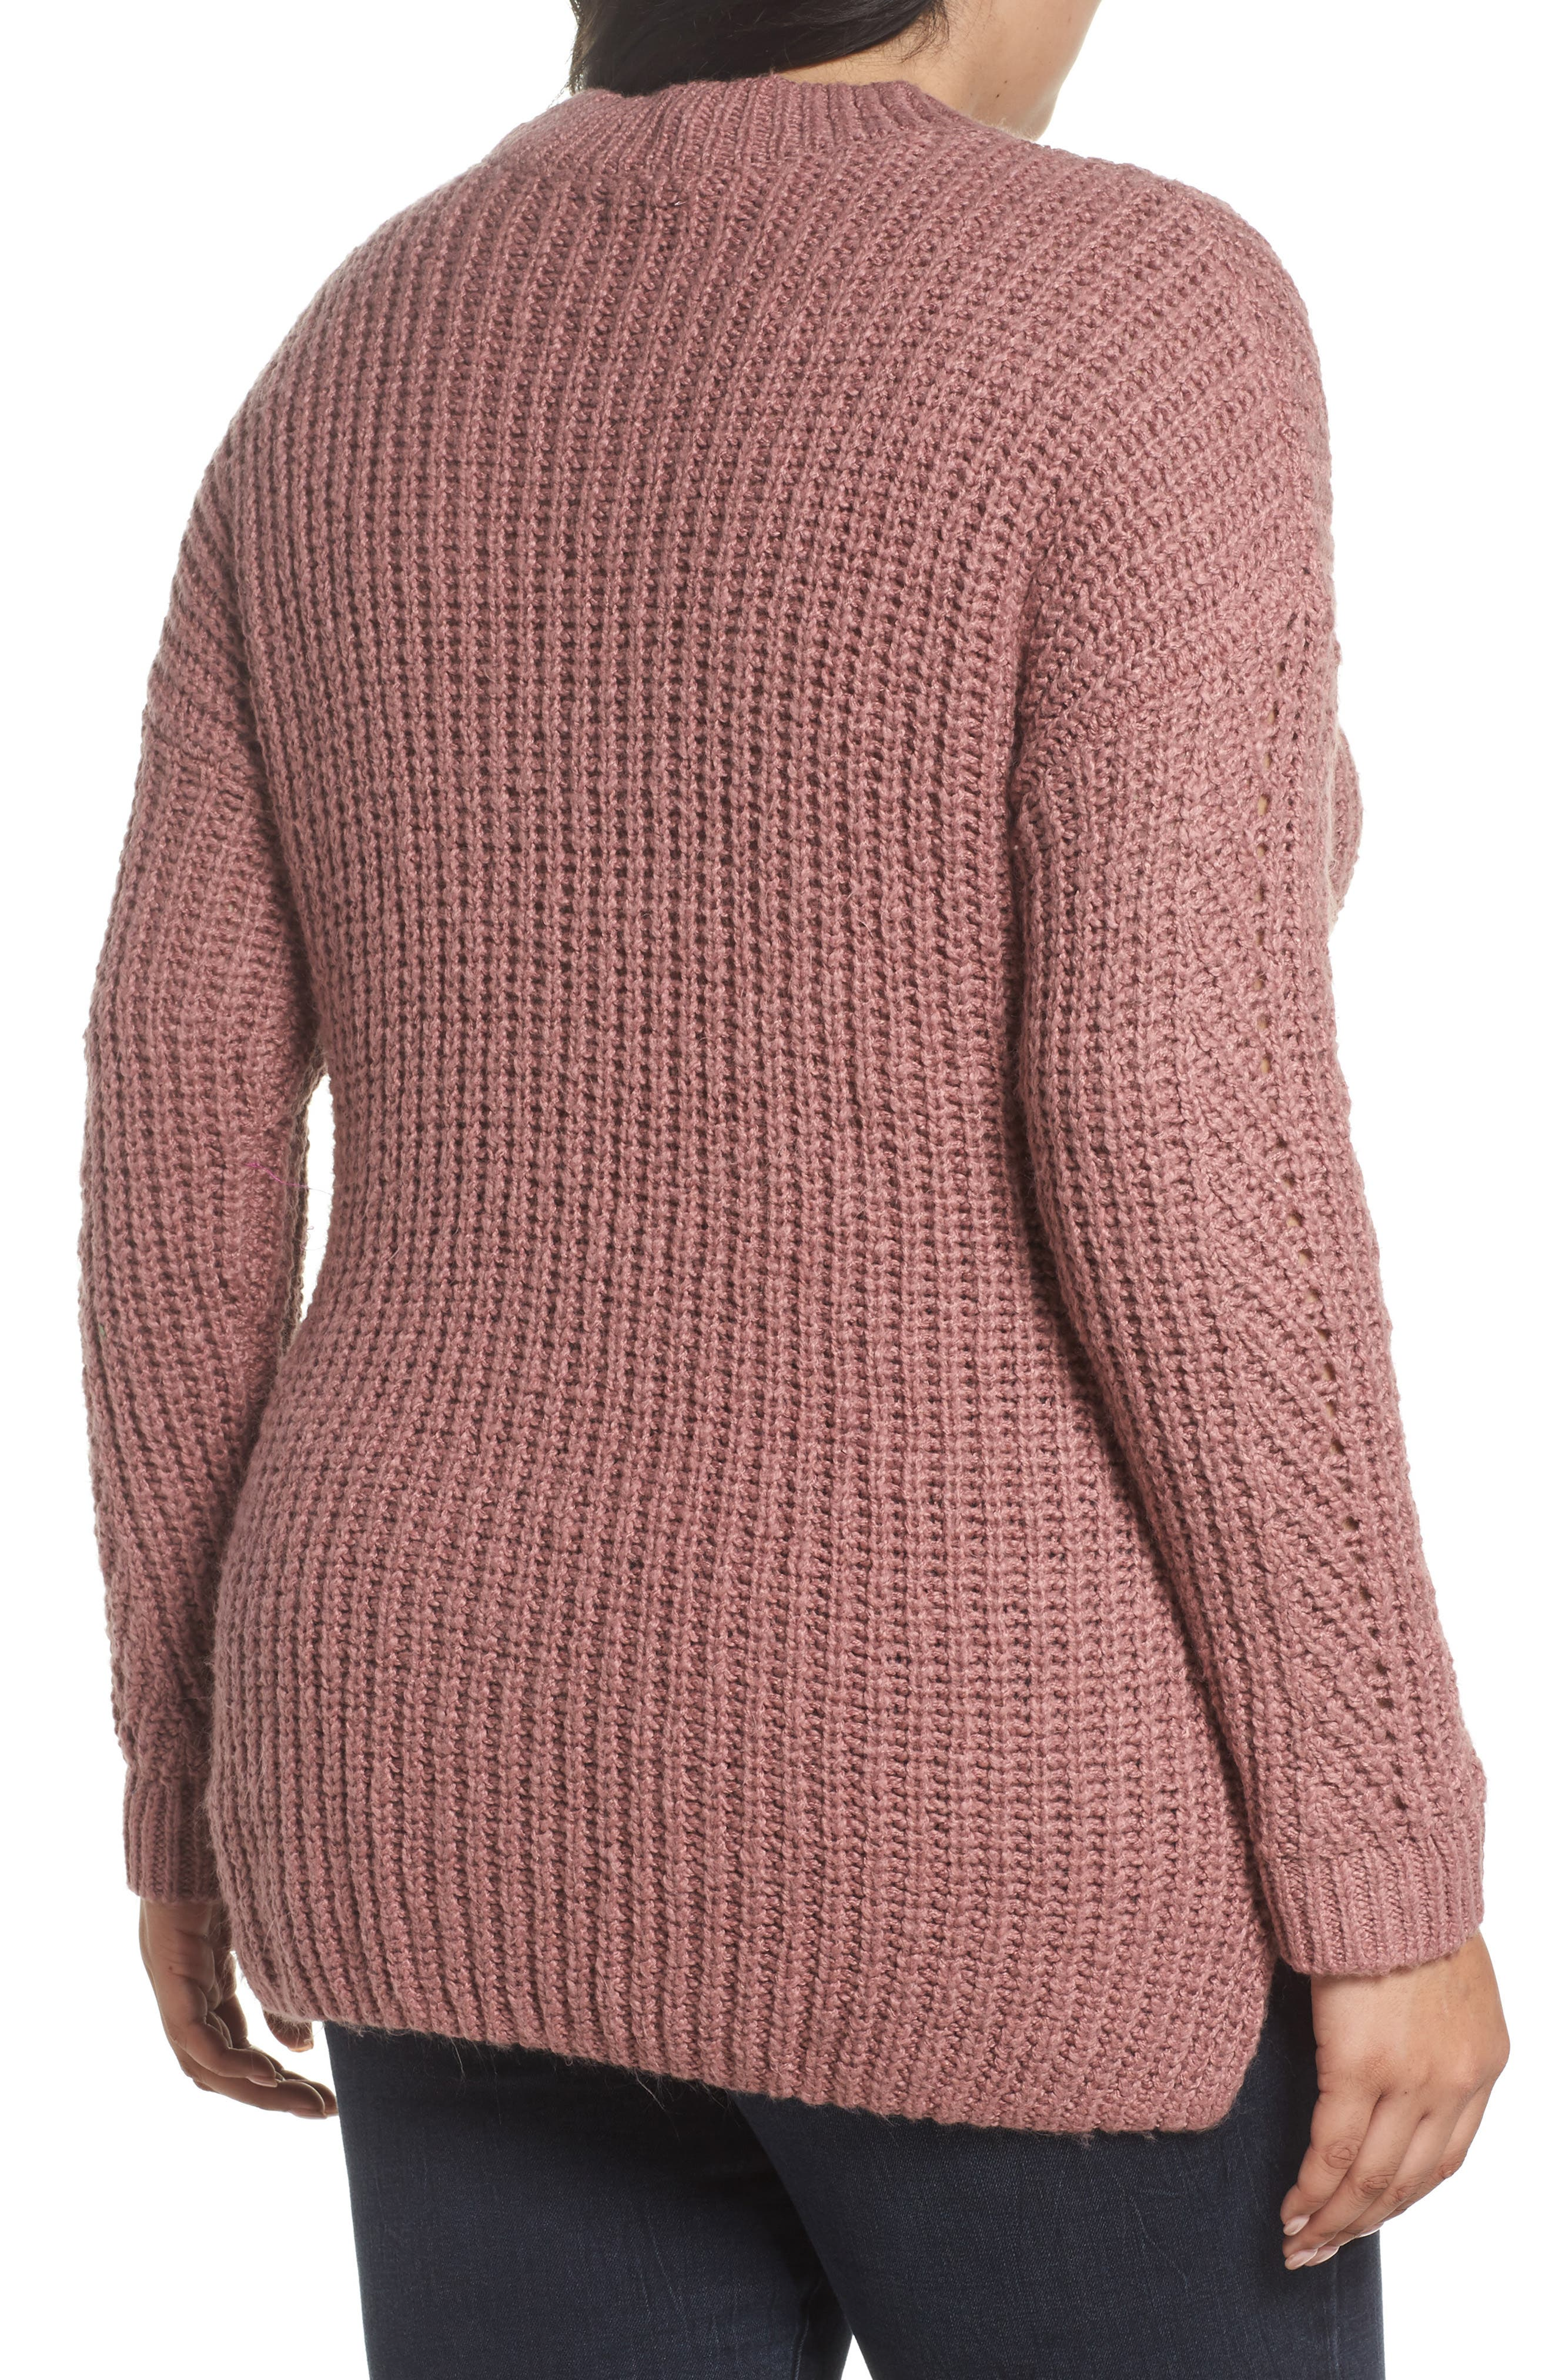 Alternate Image 2  - Lucky Brand Open Stitch Sweater (Plus Size)